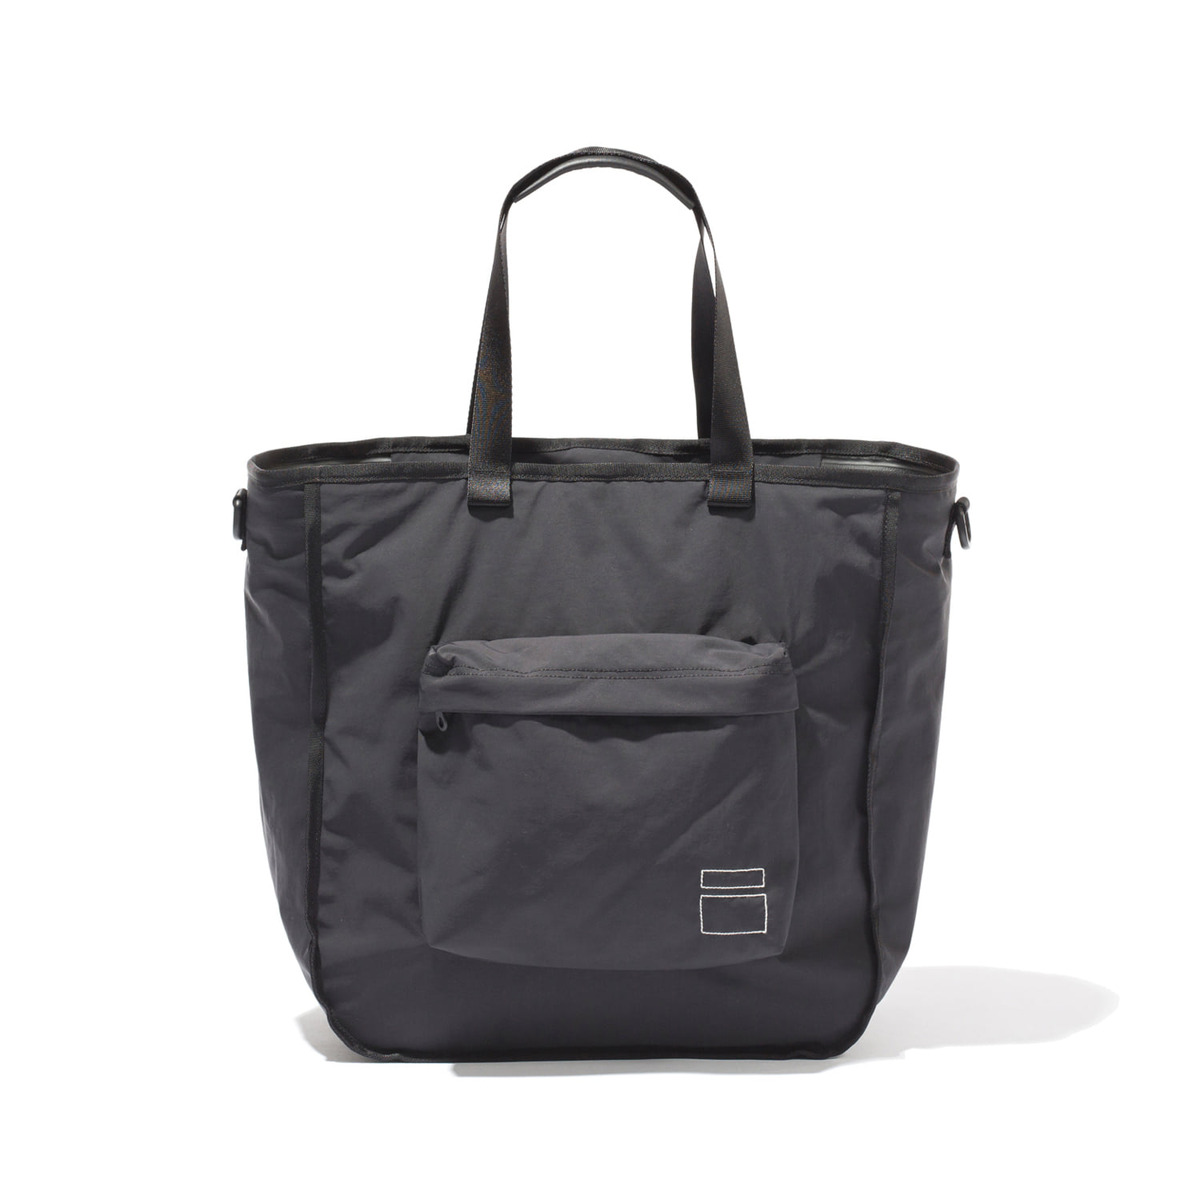 [BLANKOF] TLG 01 990 T990 BAG 'BLACK'